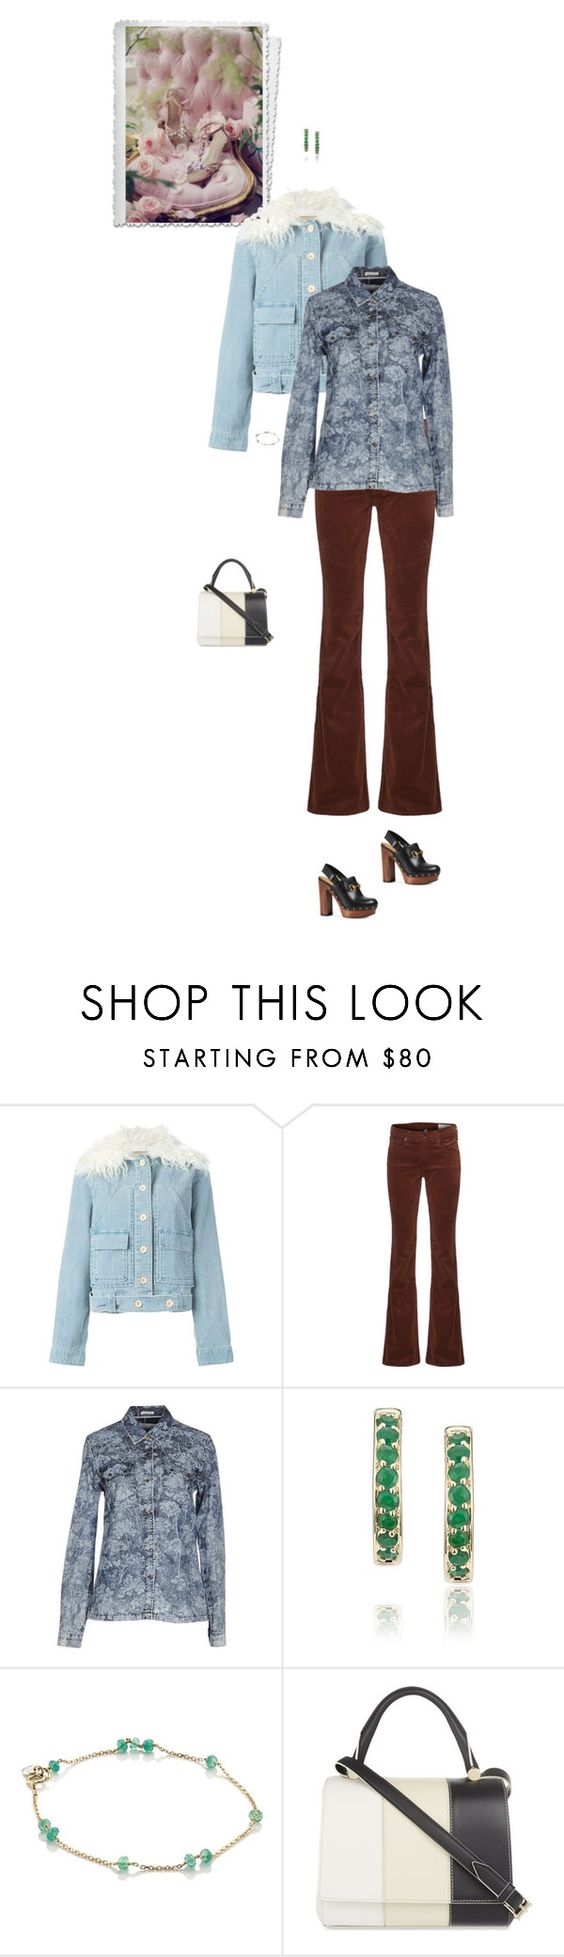 """Unbenannt #6033"" by pretty-girl-in-fashion ❤ liked on Polyvore featuring Chloé, rag & bone, Pepe Jeans London, Laura Lee, MaxMara and Gucci"